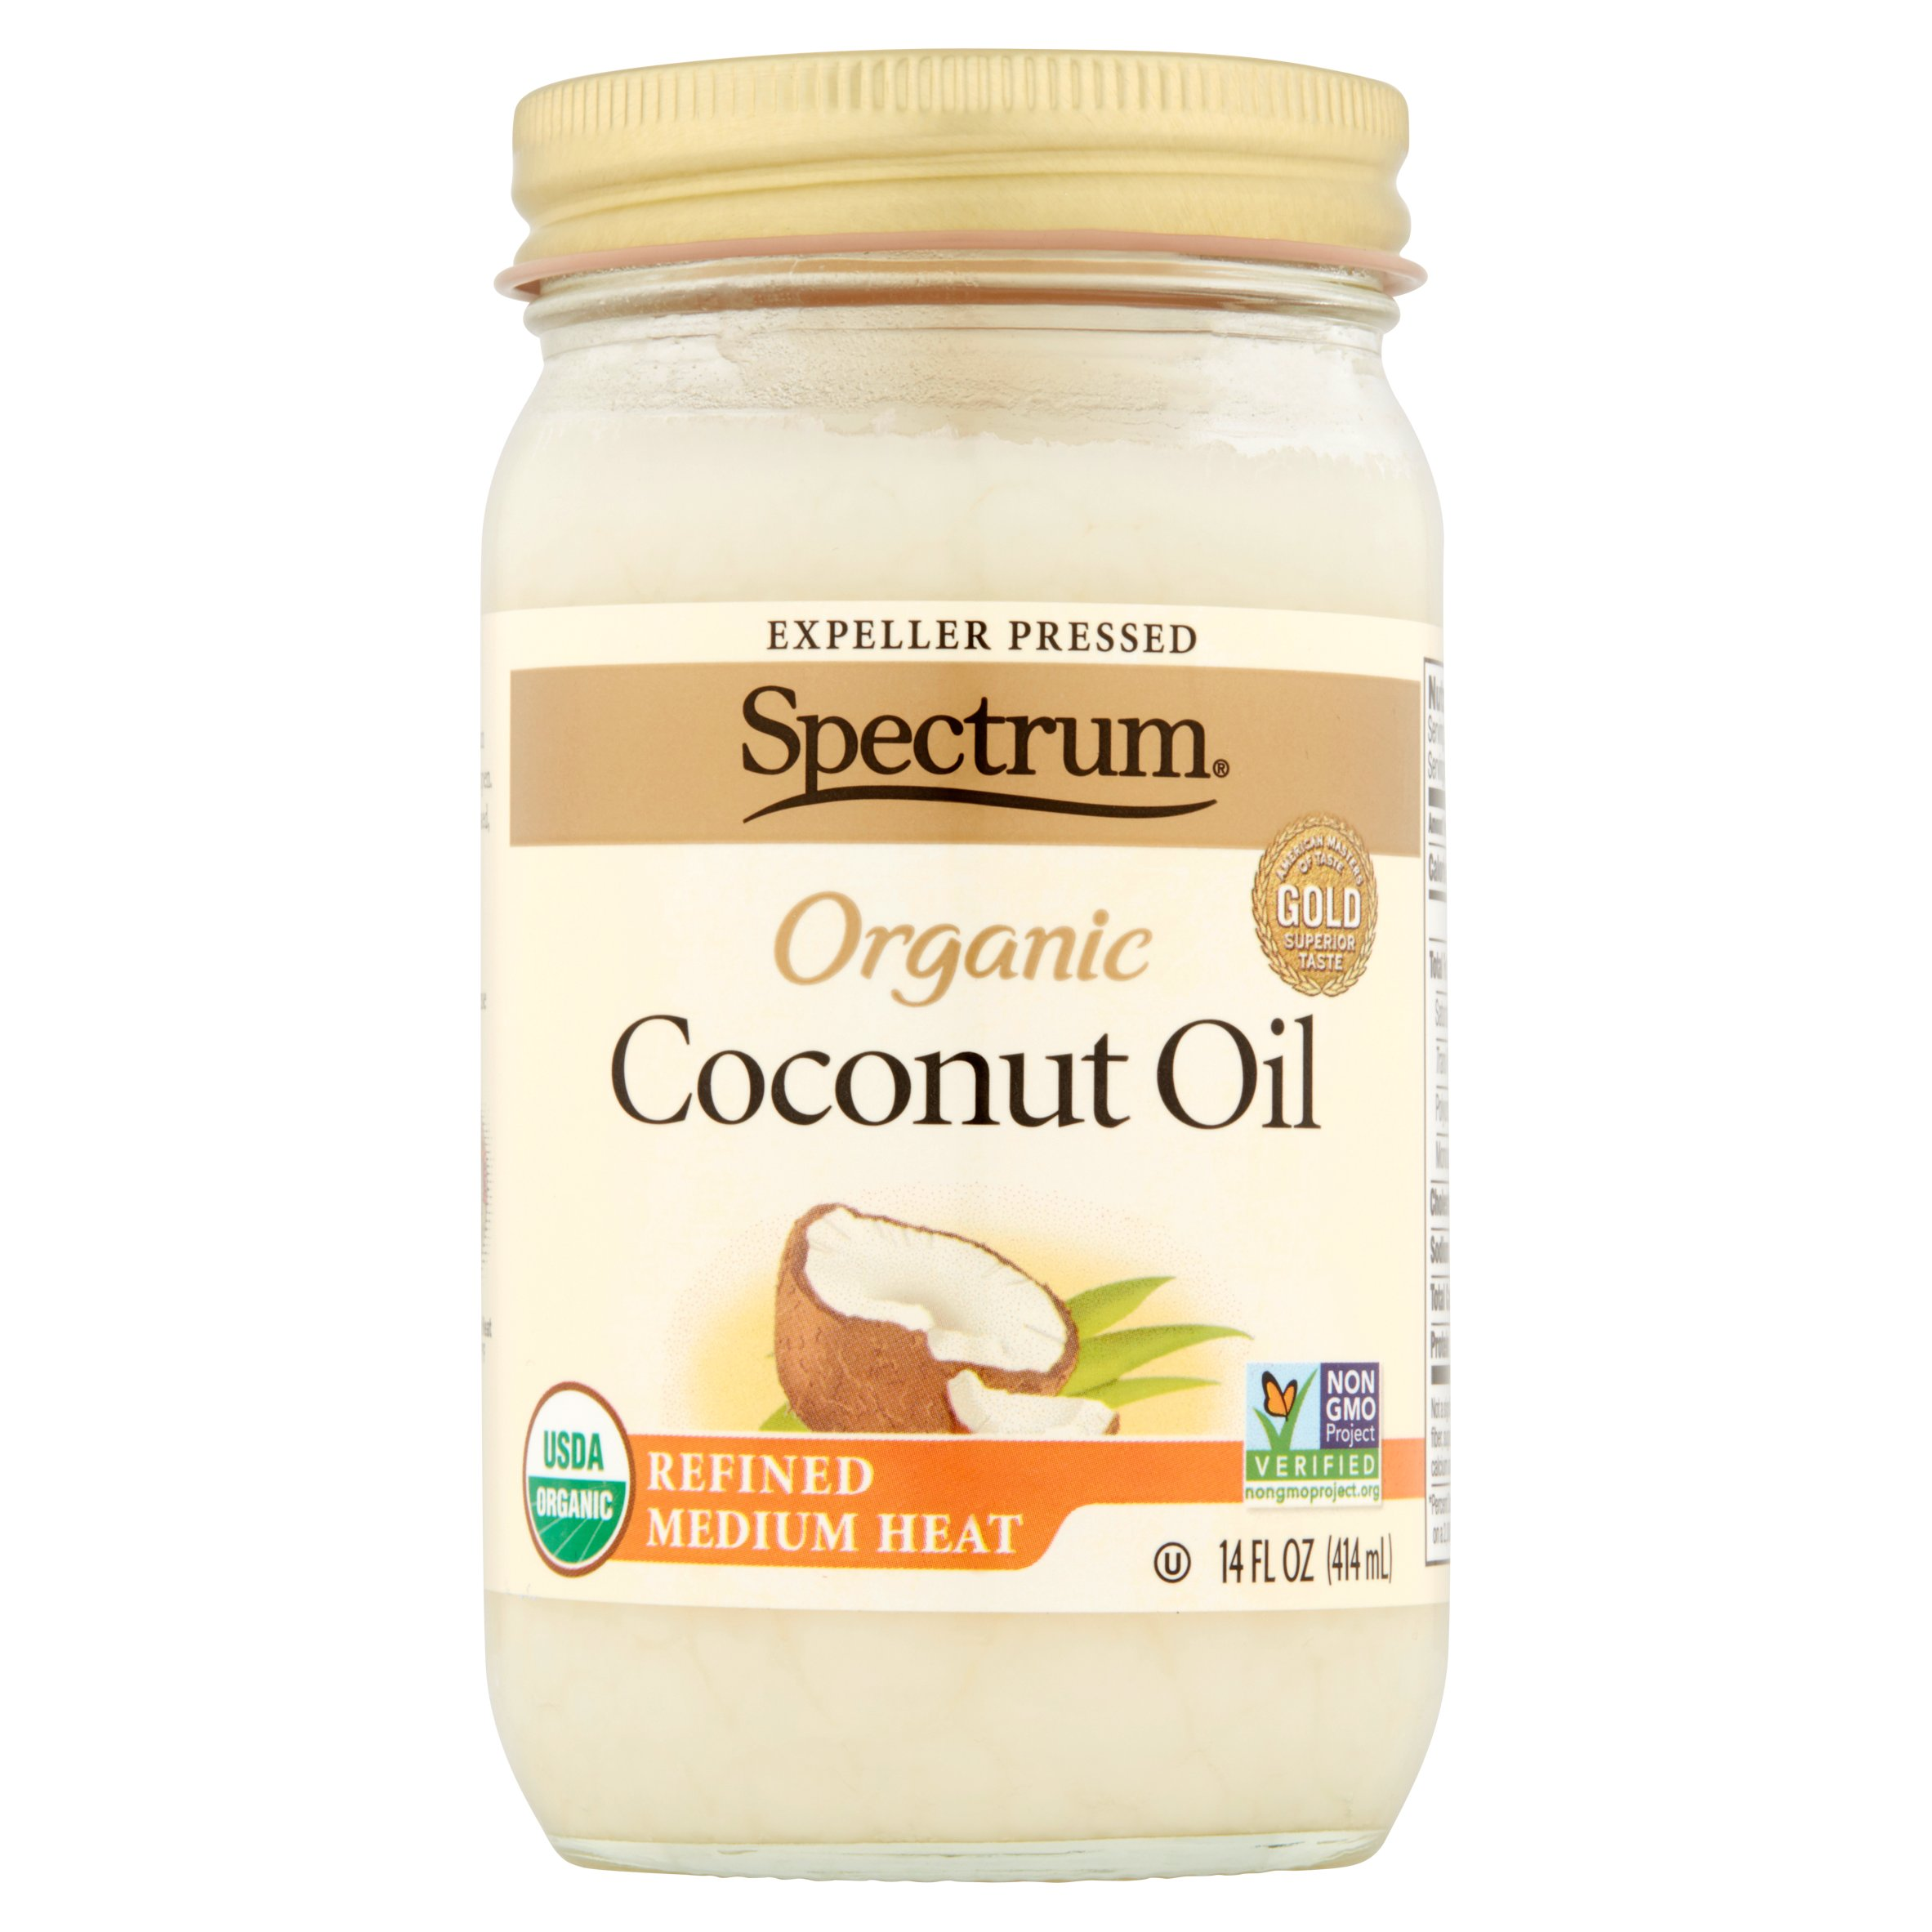 Spectrum Organic Coconut Oil, 14 fl oz